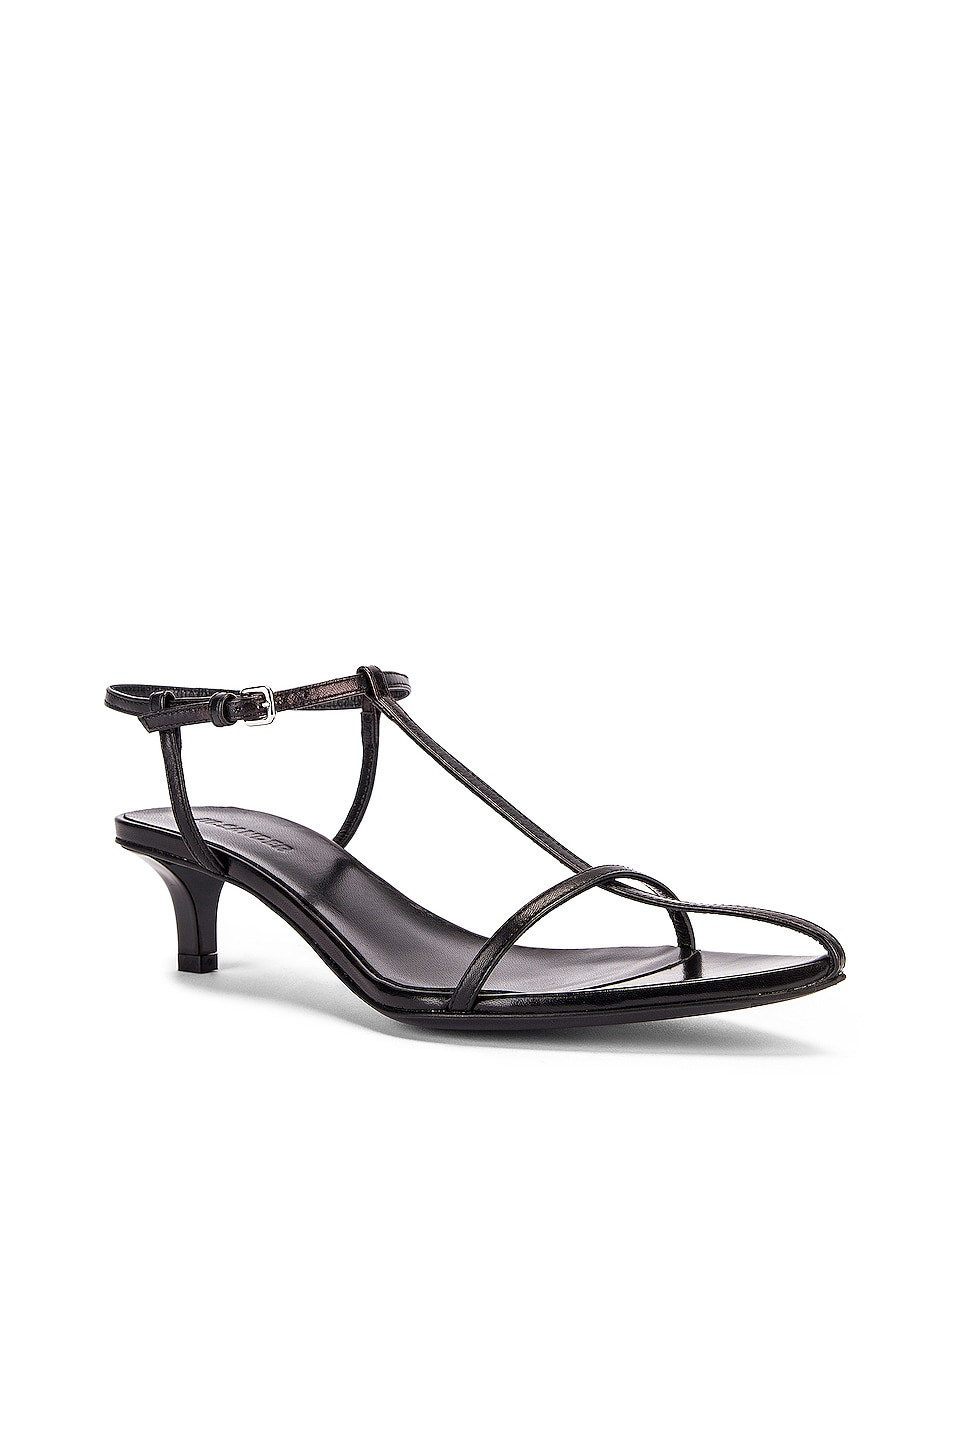 Image 2 of Jil Sander Leather Kitten Heel Sandals in Black